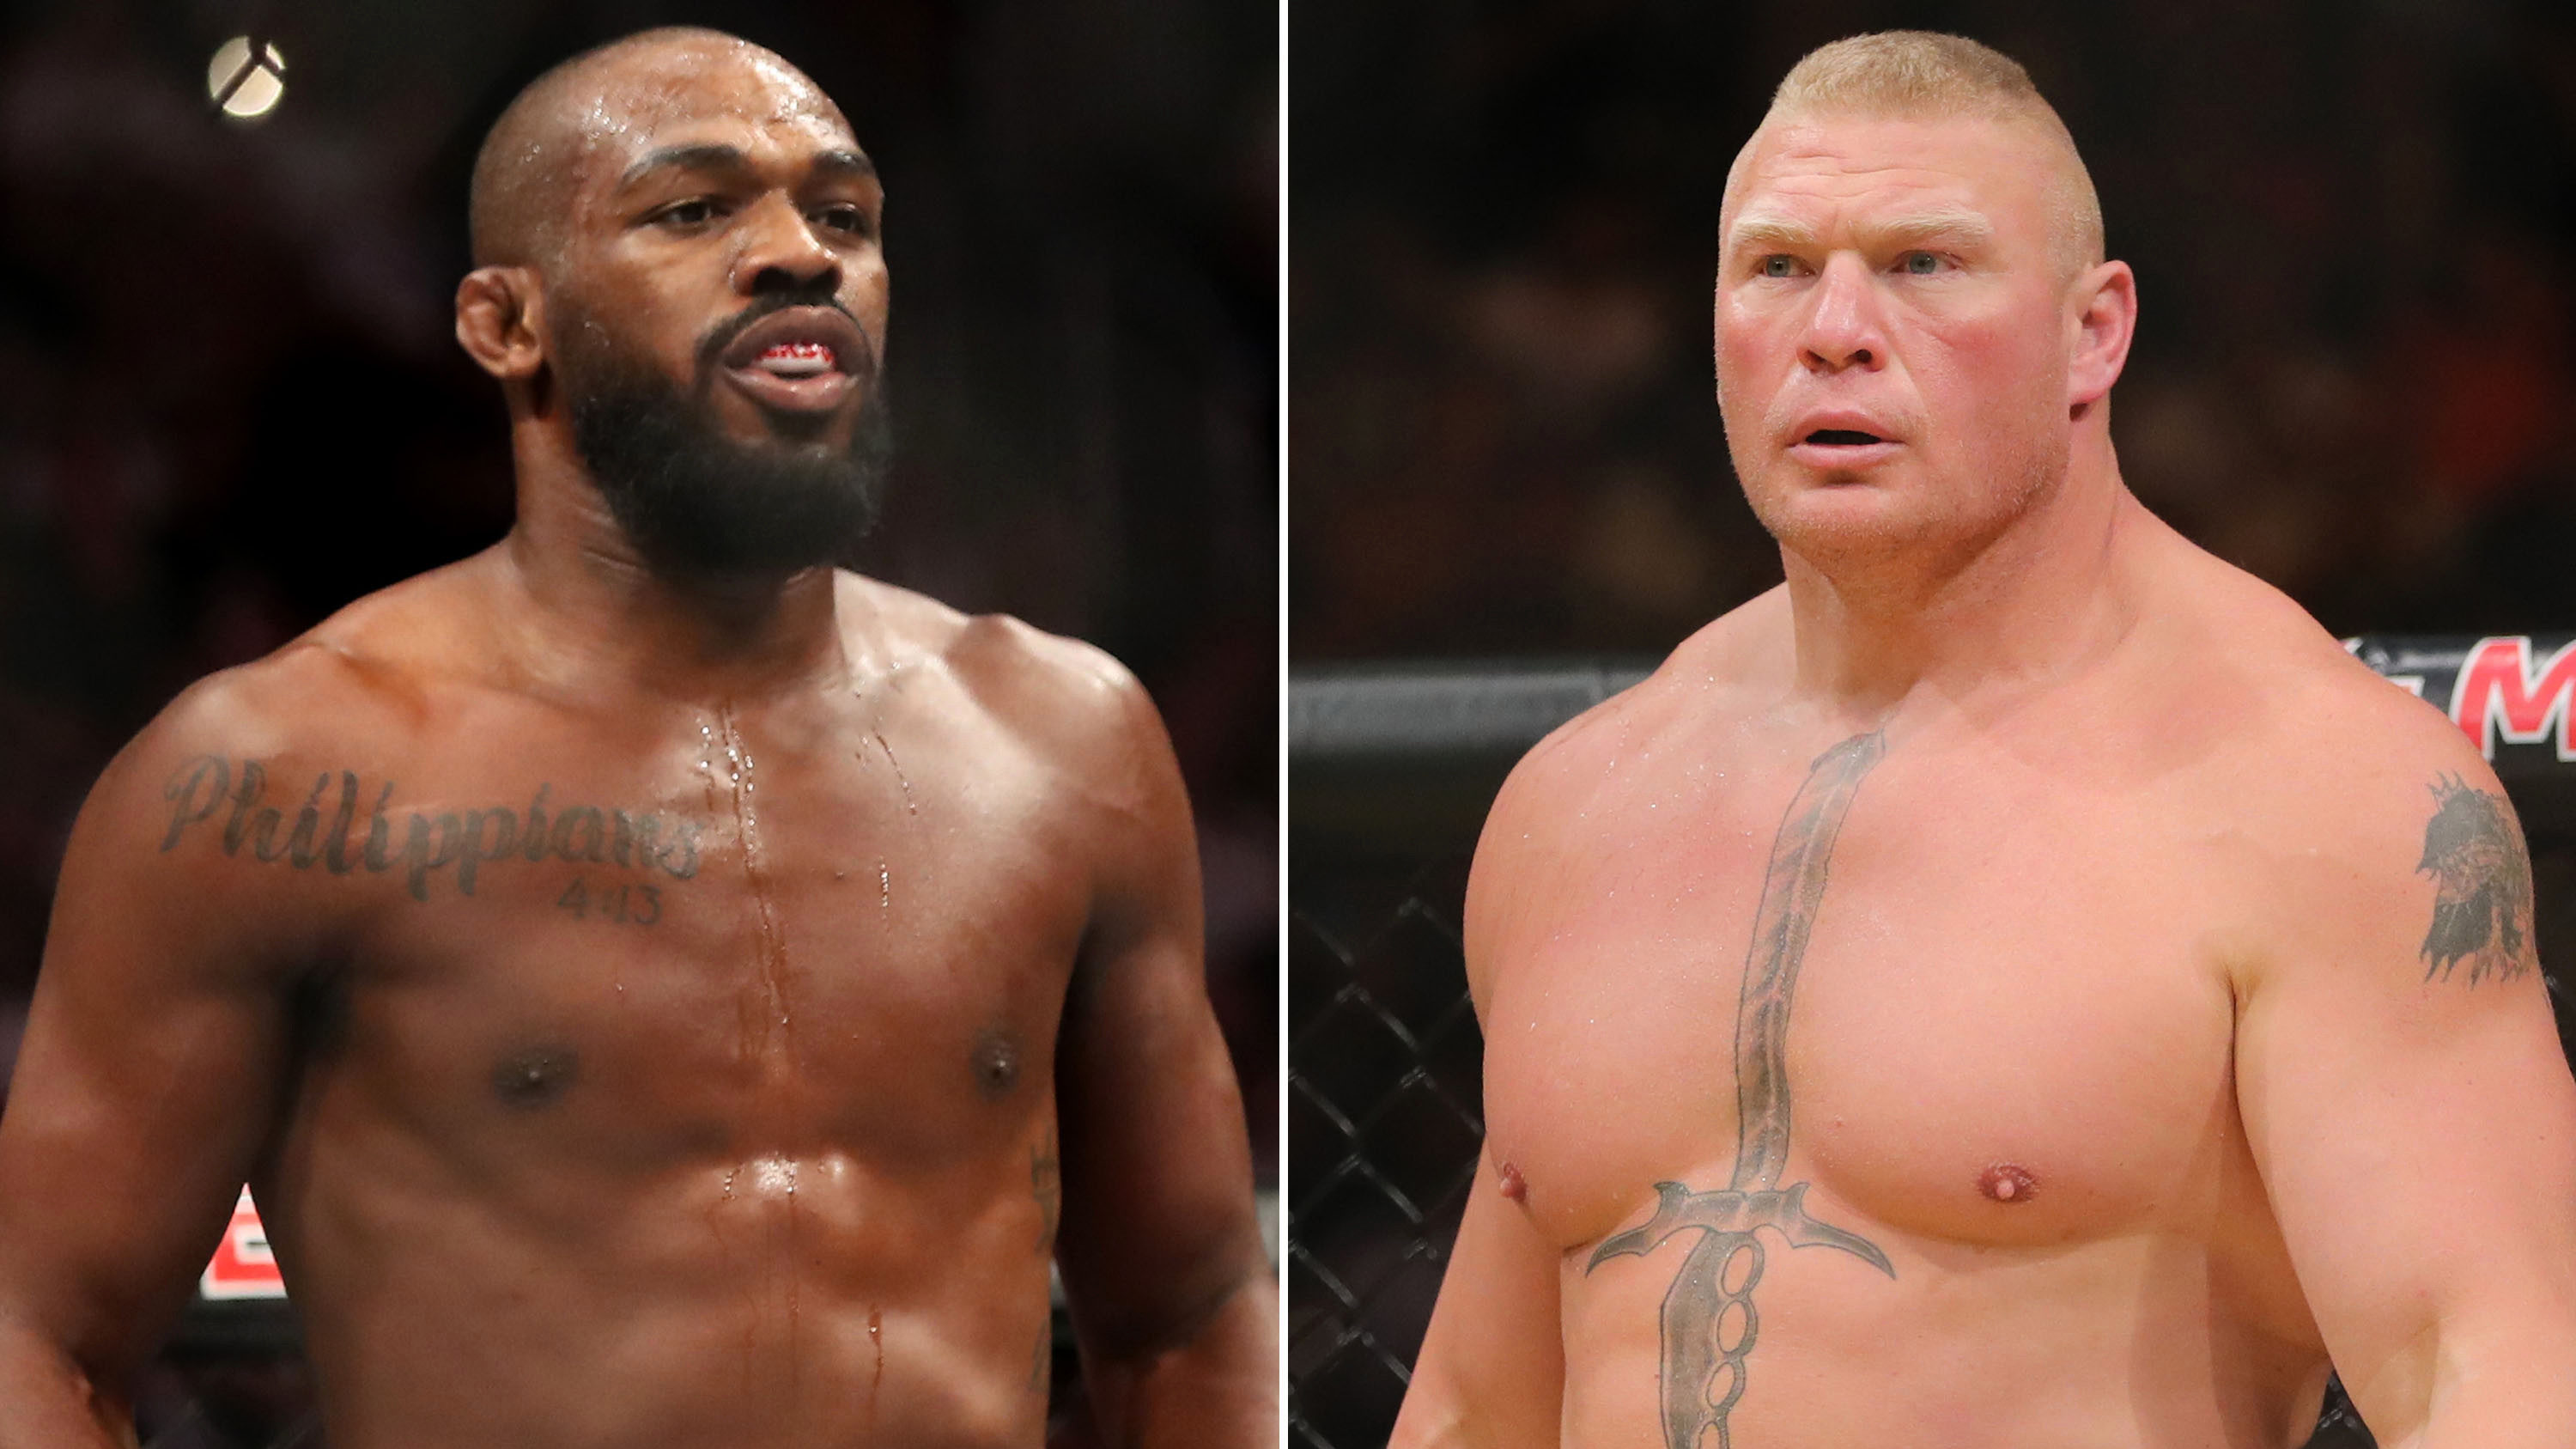 UFC Jon Jones vs Brock Lesnar